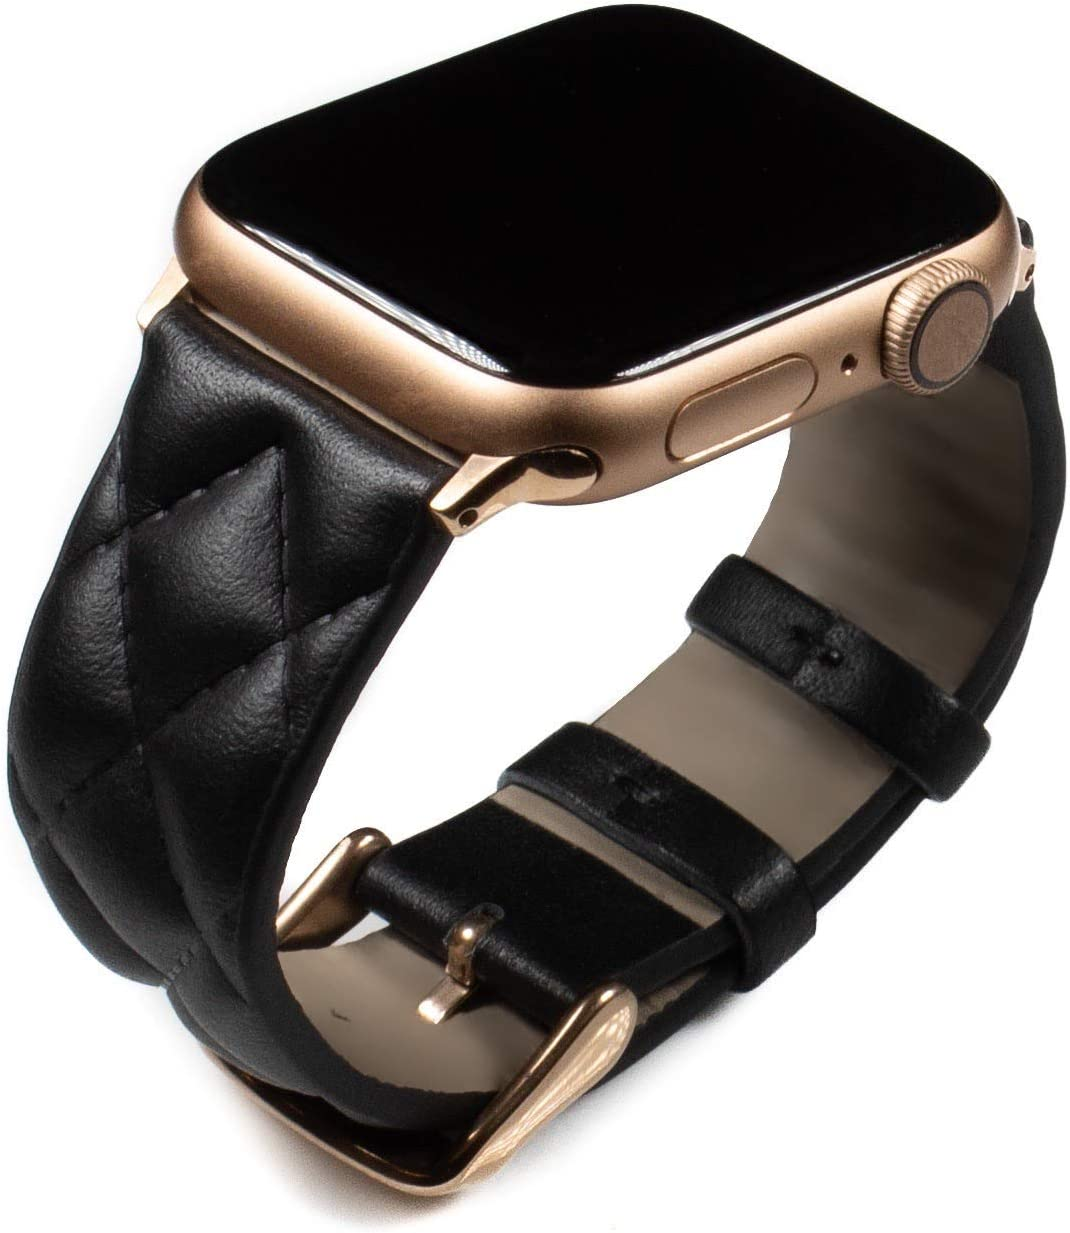 Grit & Grazia Top Grain Leather Apple Watch Band Compatible w/ 38mm 40mm 42mm 44mm Series 1/2/3/4/5 iWatch, Diamond Patten Apple Watch Replacement Strap (Black + Rose Gold Hardware, 42mm/44mm)